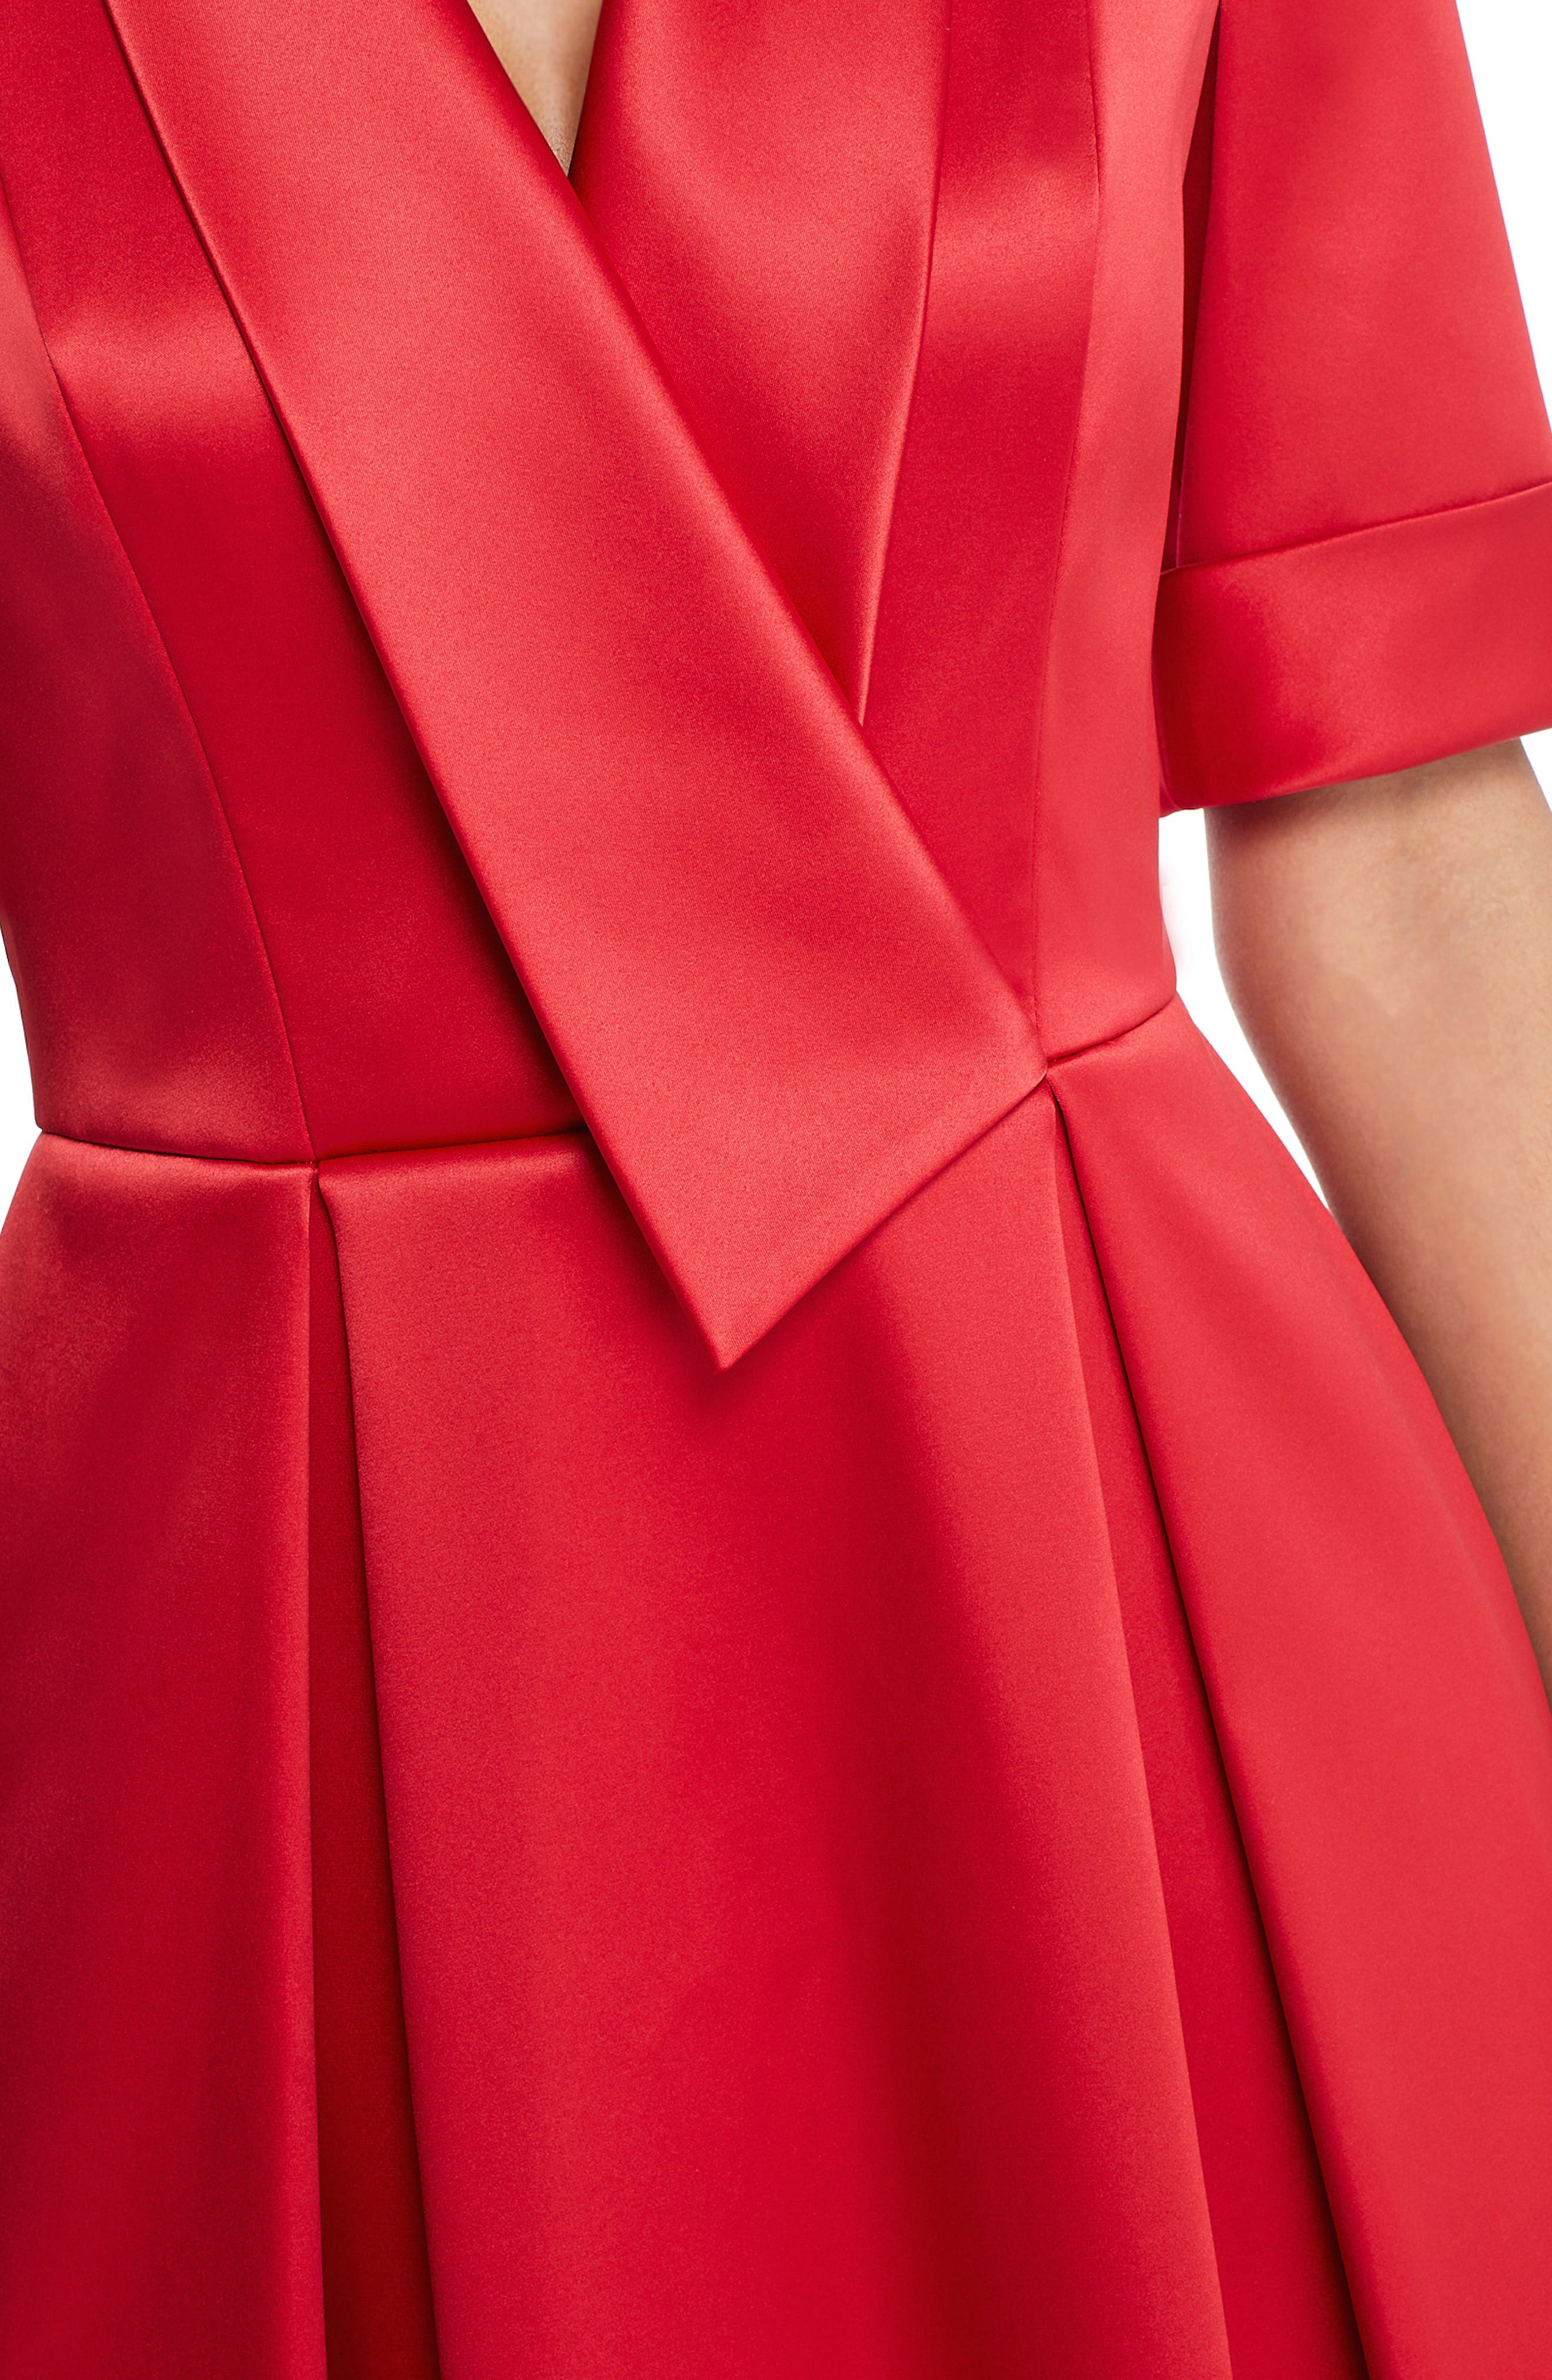 GAL MEETS GLAM COLLECTION,                             Ruby Royal Satin Asymmetrical Collar Dress,                             Alternate thumbnail 4, color,                             RUBY